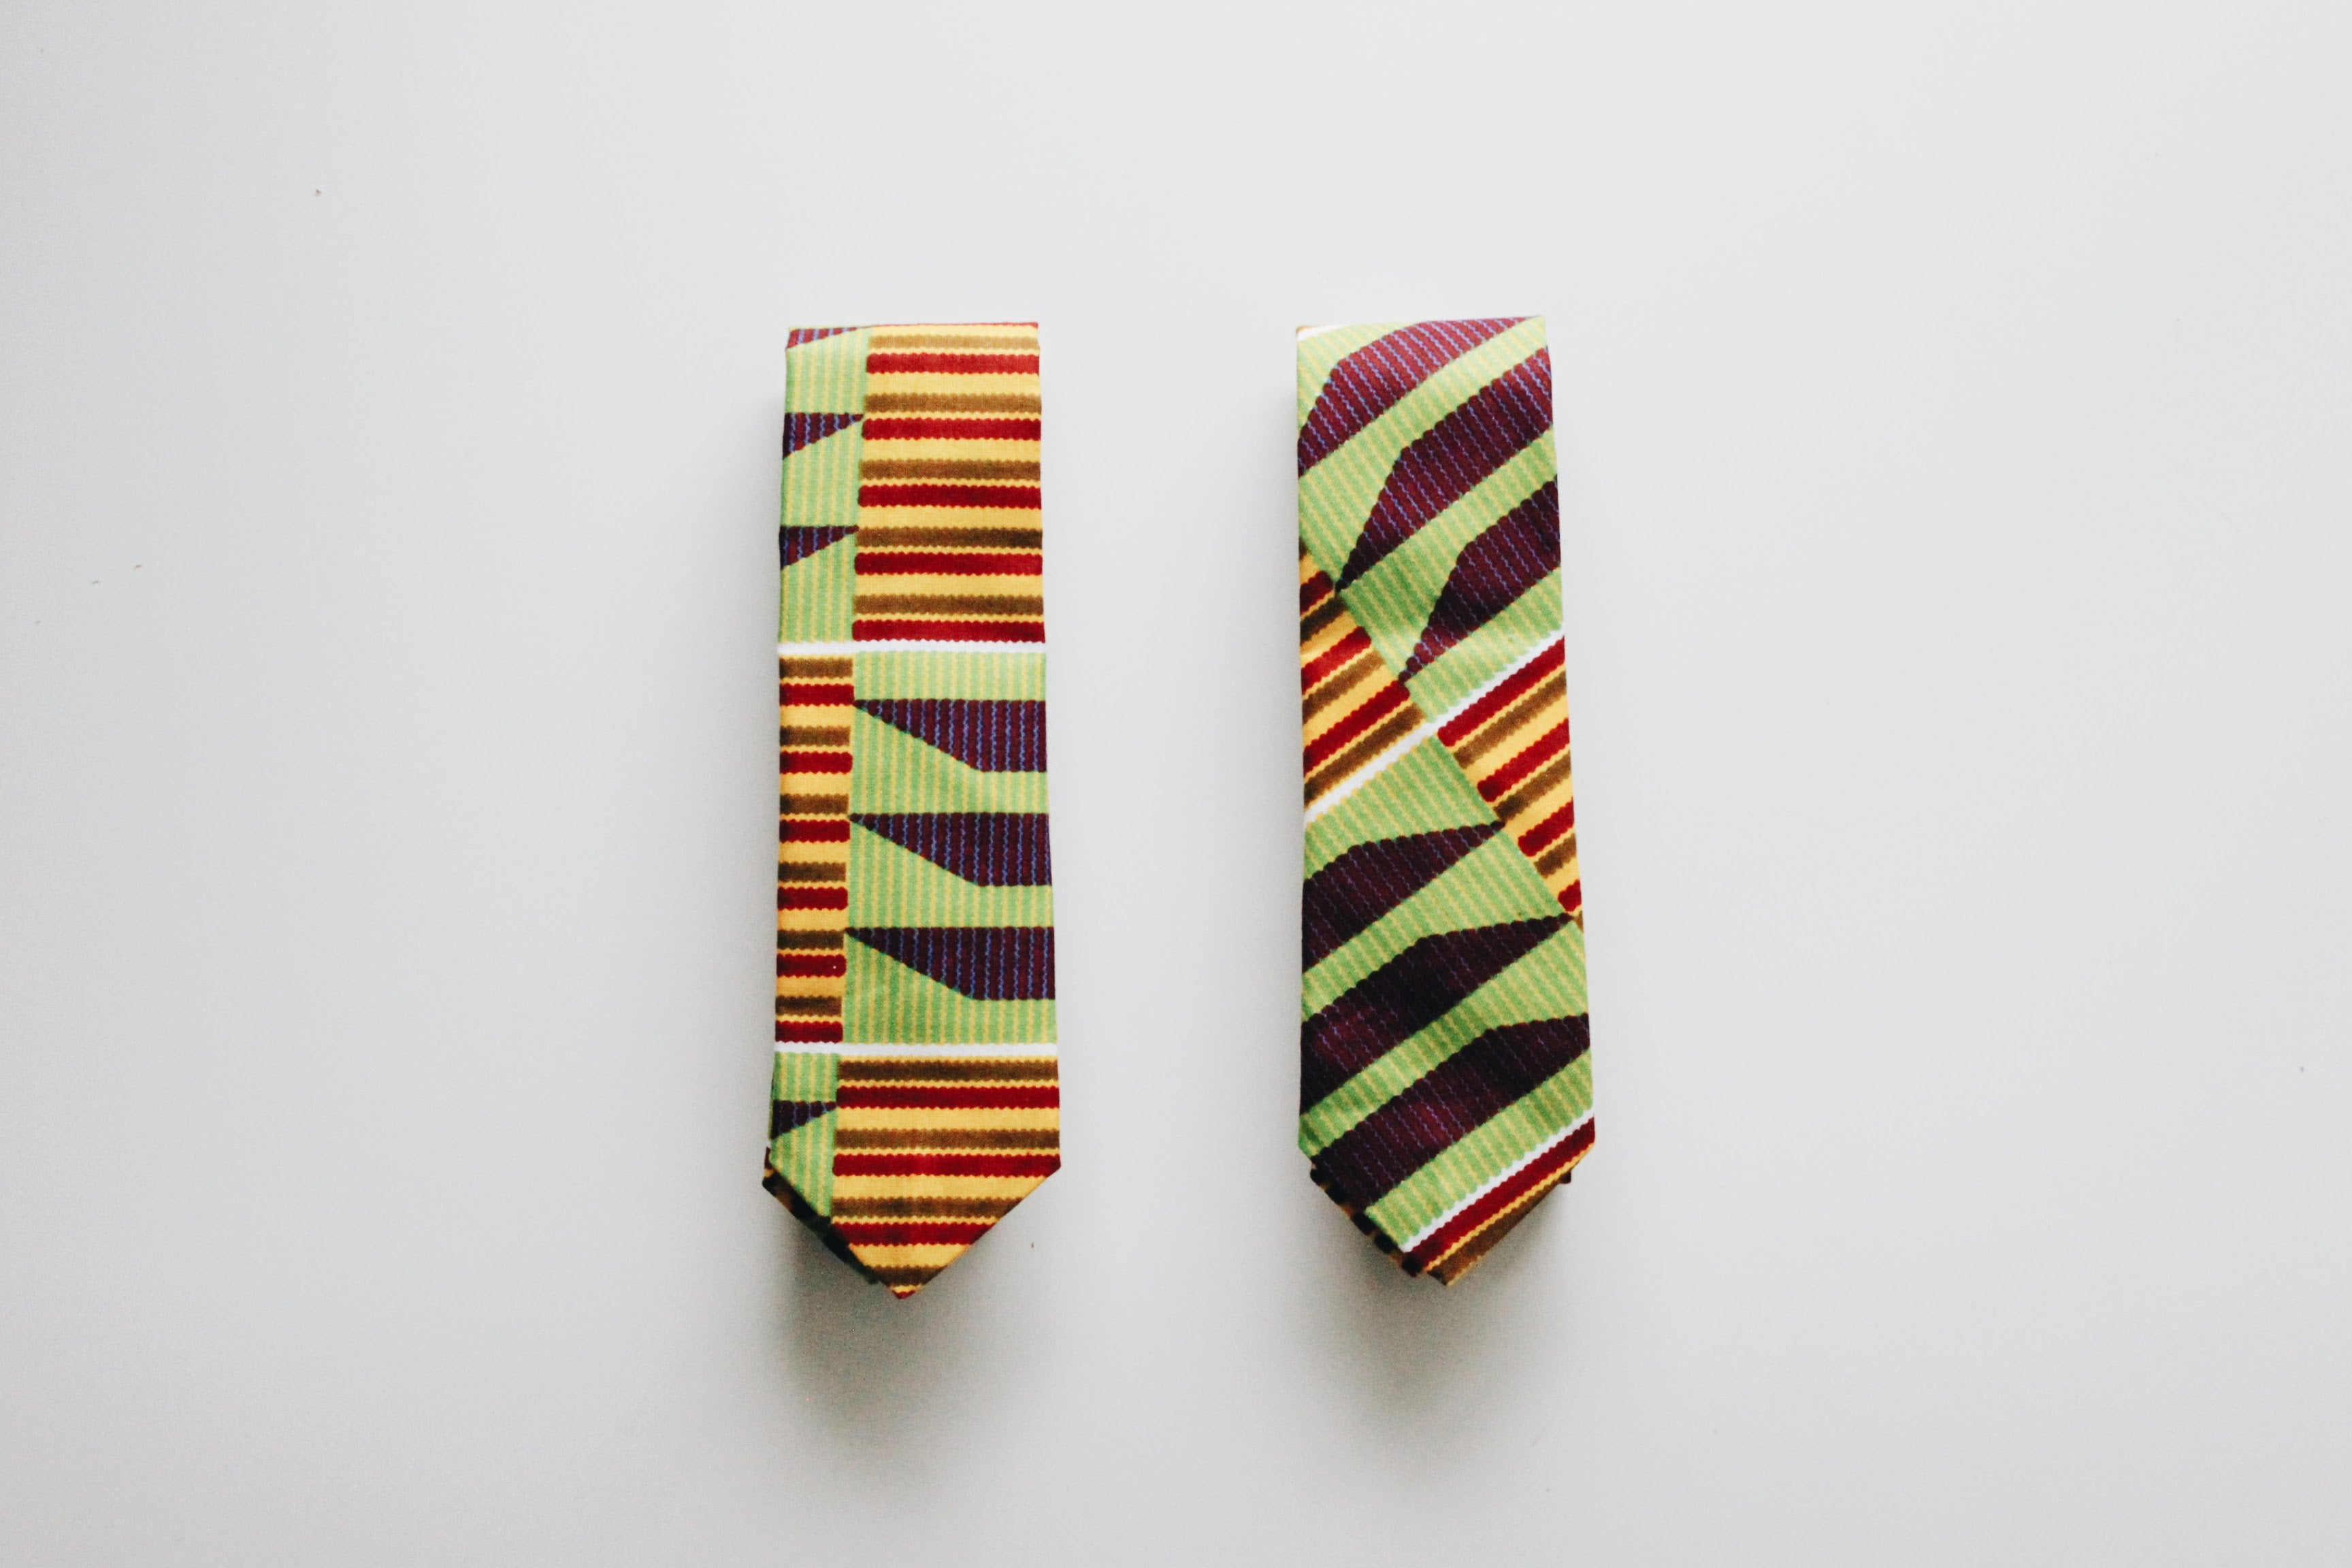 African Print Tie and Pocket Square Set - Green Kente